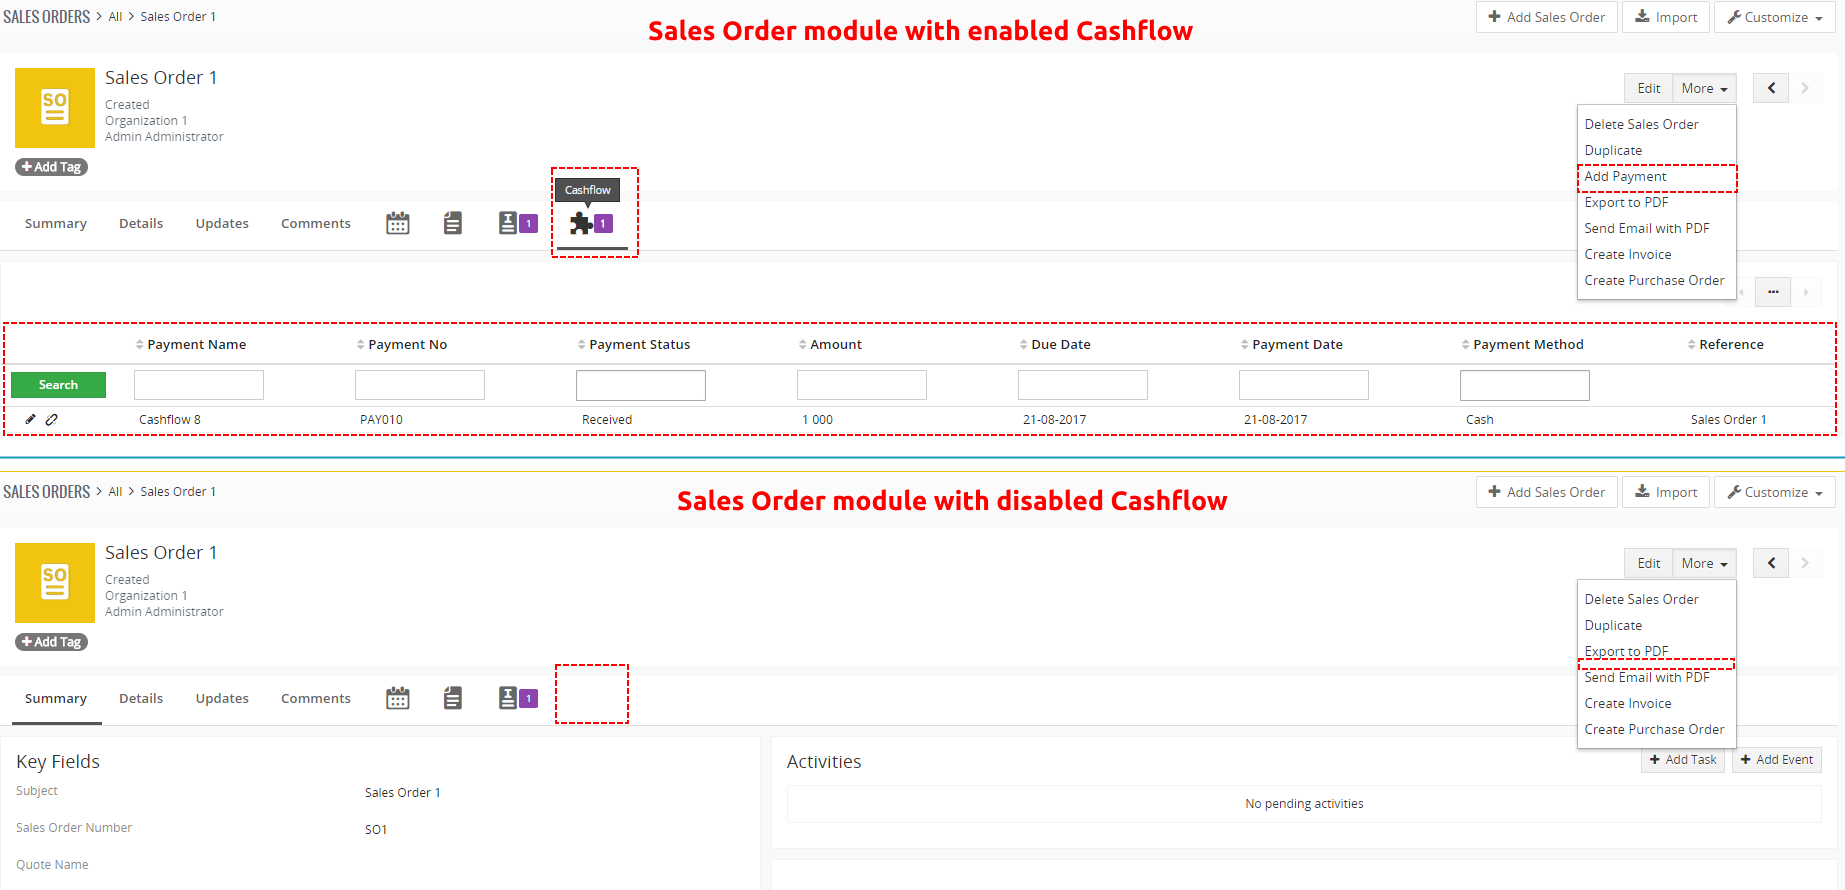 Sales Order module with/without Cashflow